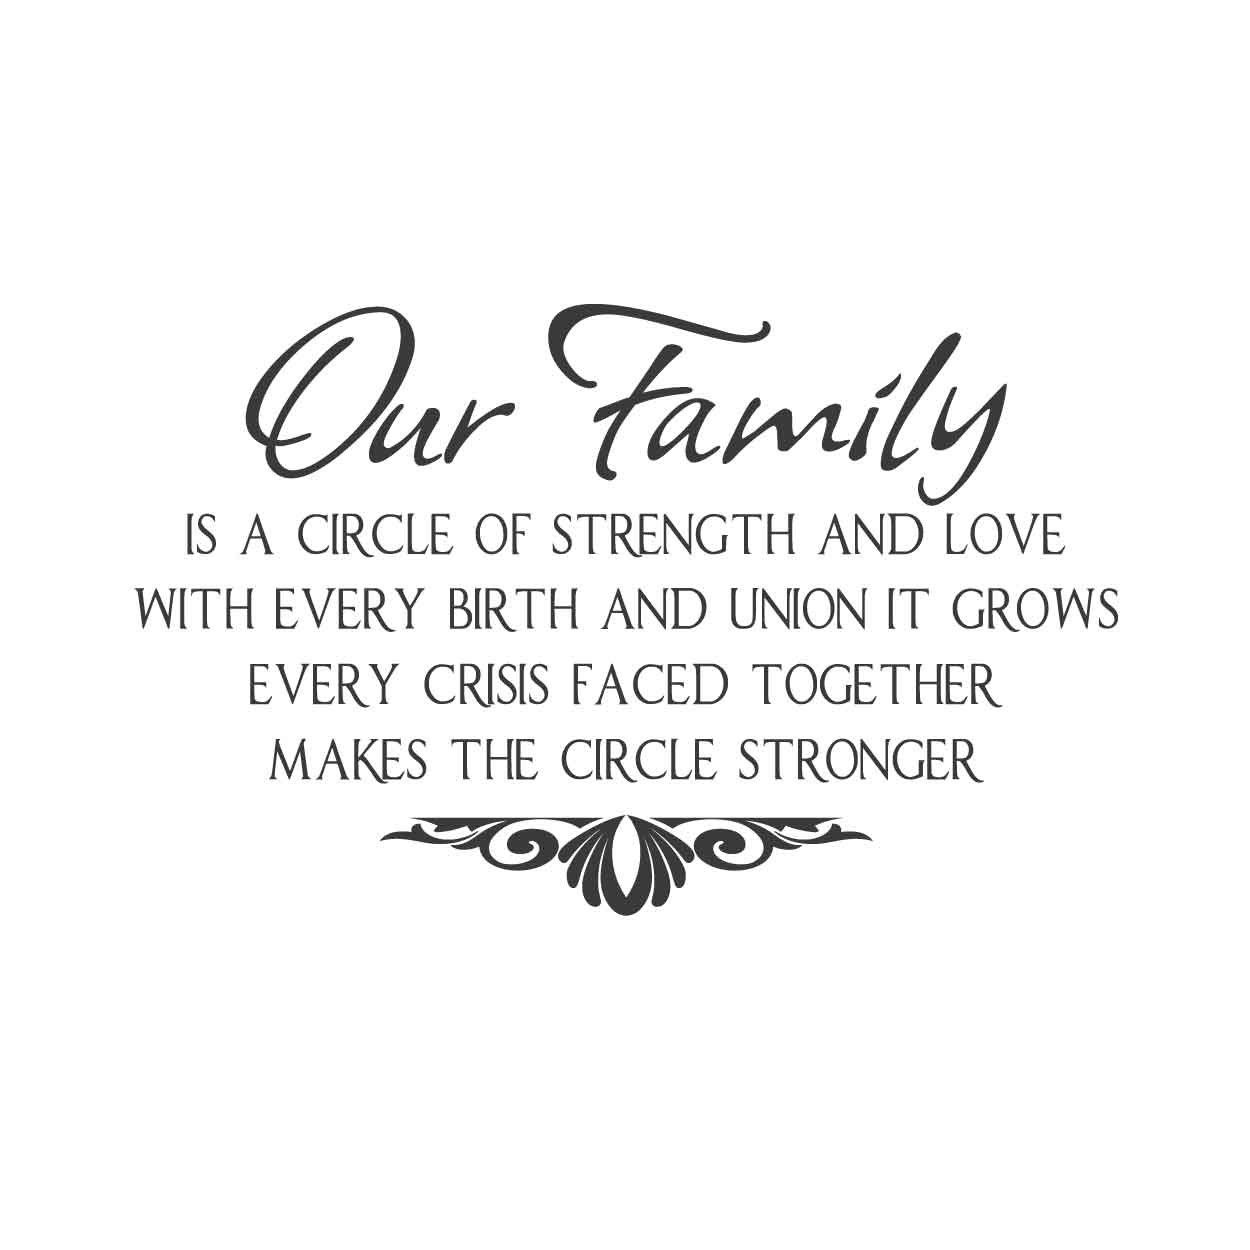 Wall Quotes Wall Decals Our Family Family Quotes Strong Family Love Quotes Family Quotes Inspirational